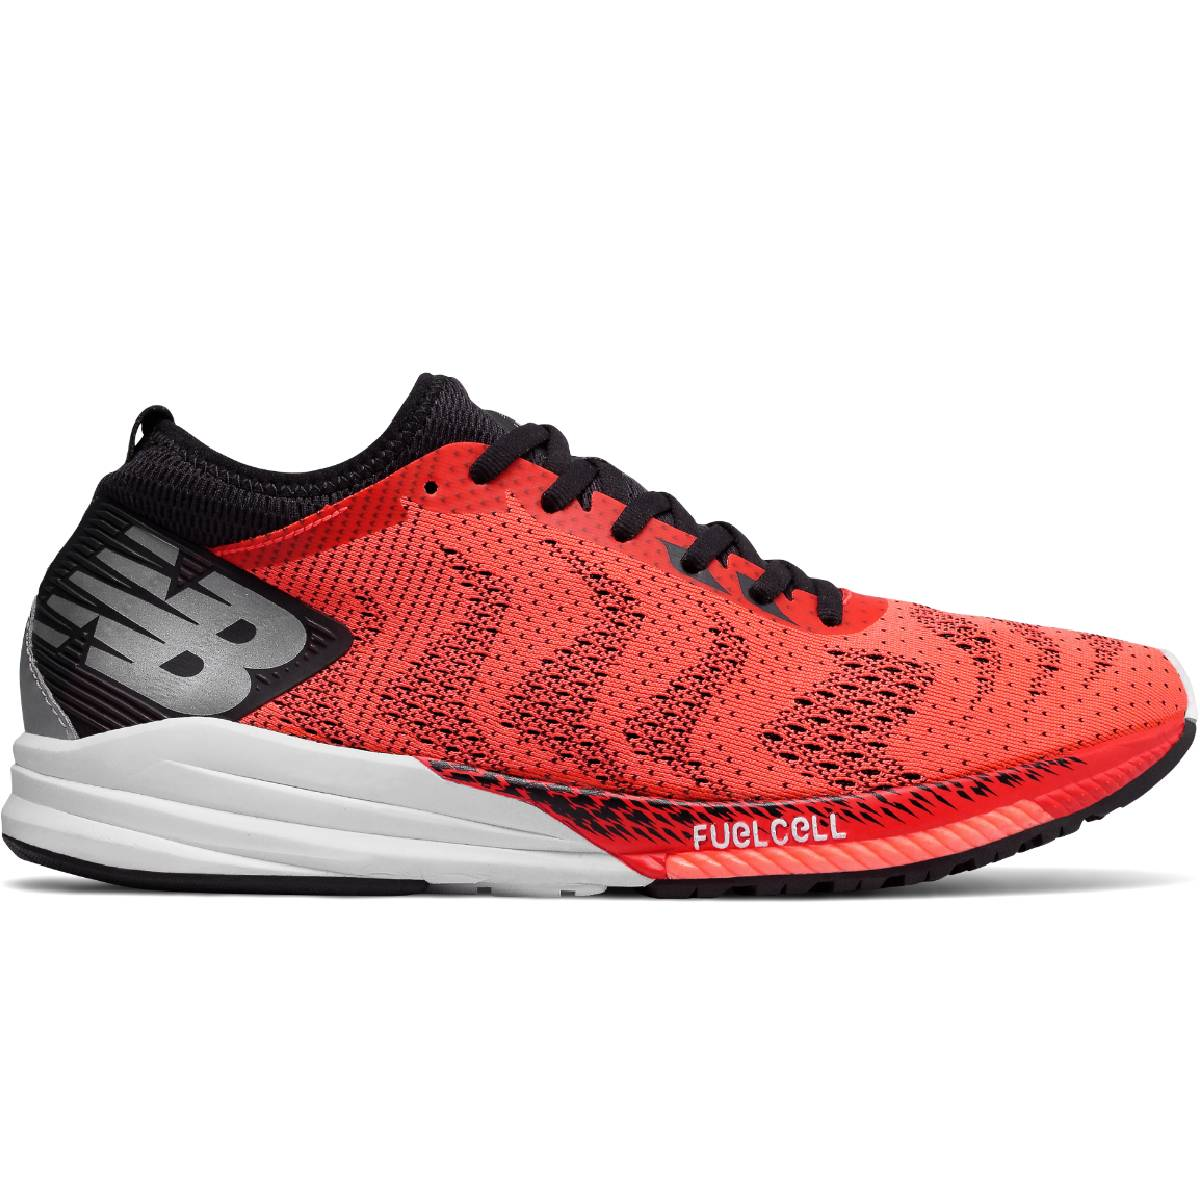 New Balance FuelCell Impulse Laufschuh Herren orange/black *UVP 139,99